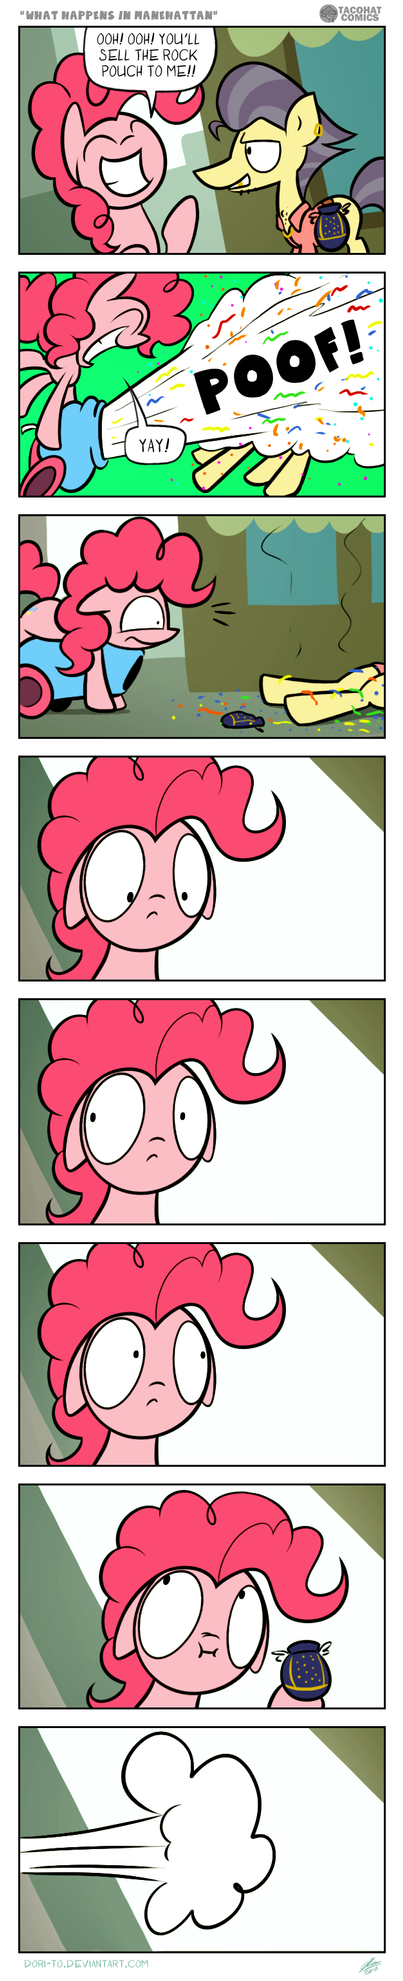 Episode Comic - What Happens In Manehattan by Dori-to